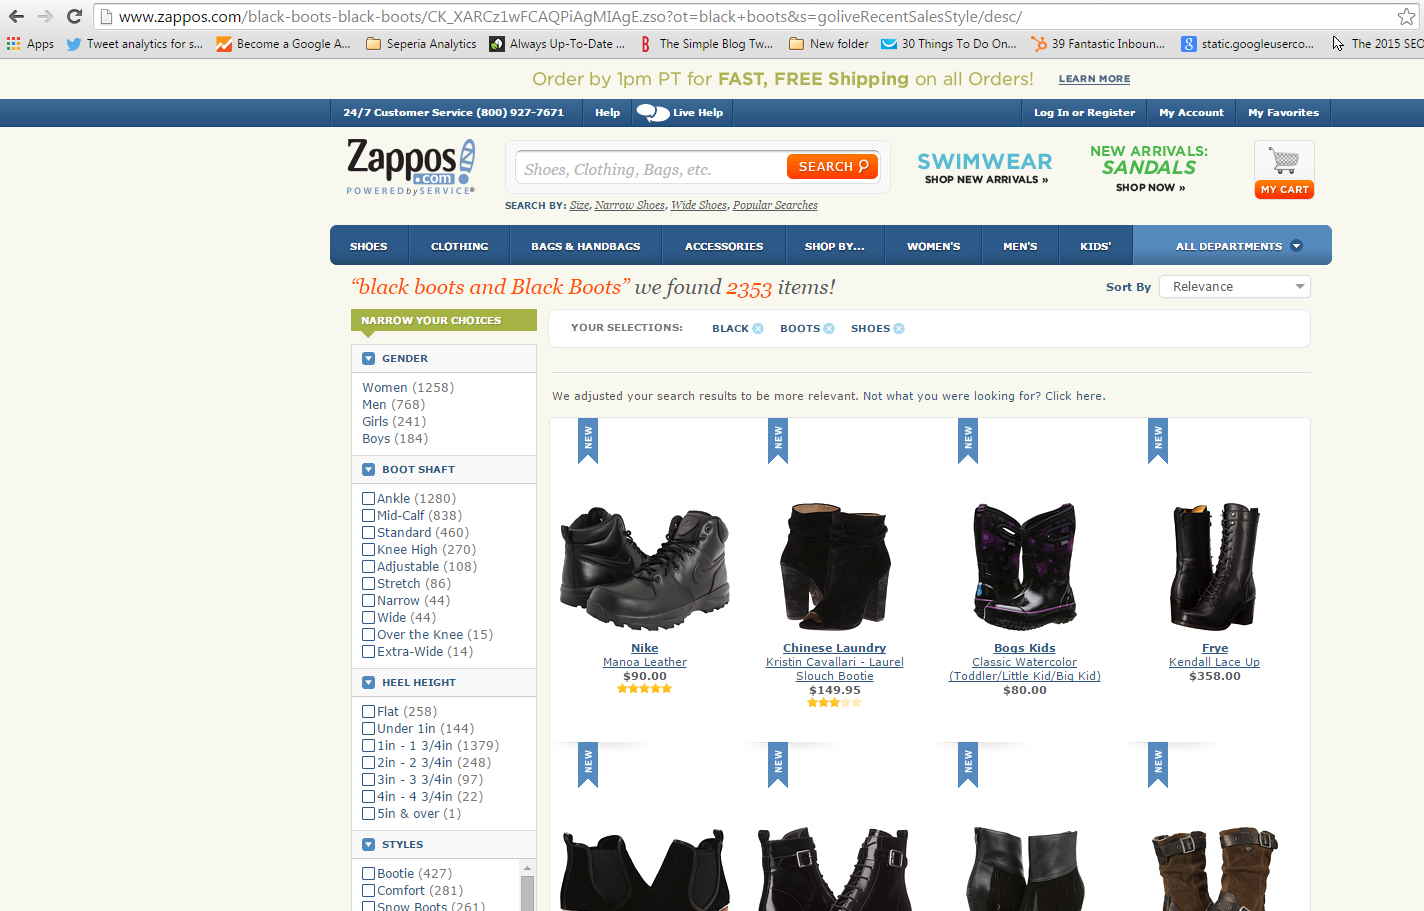 Zappos internal search results